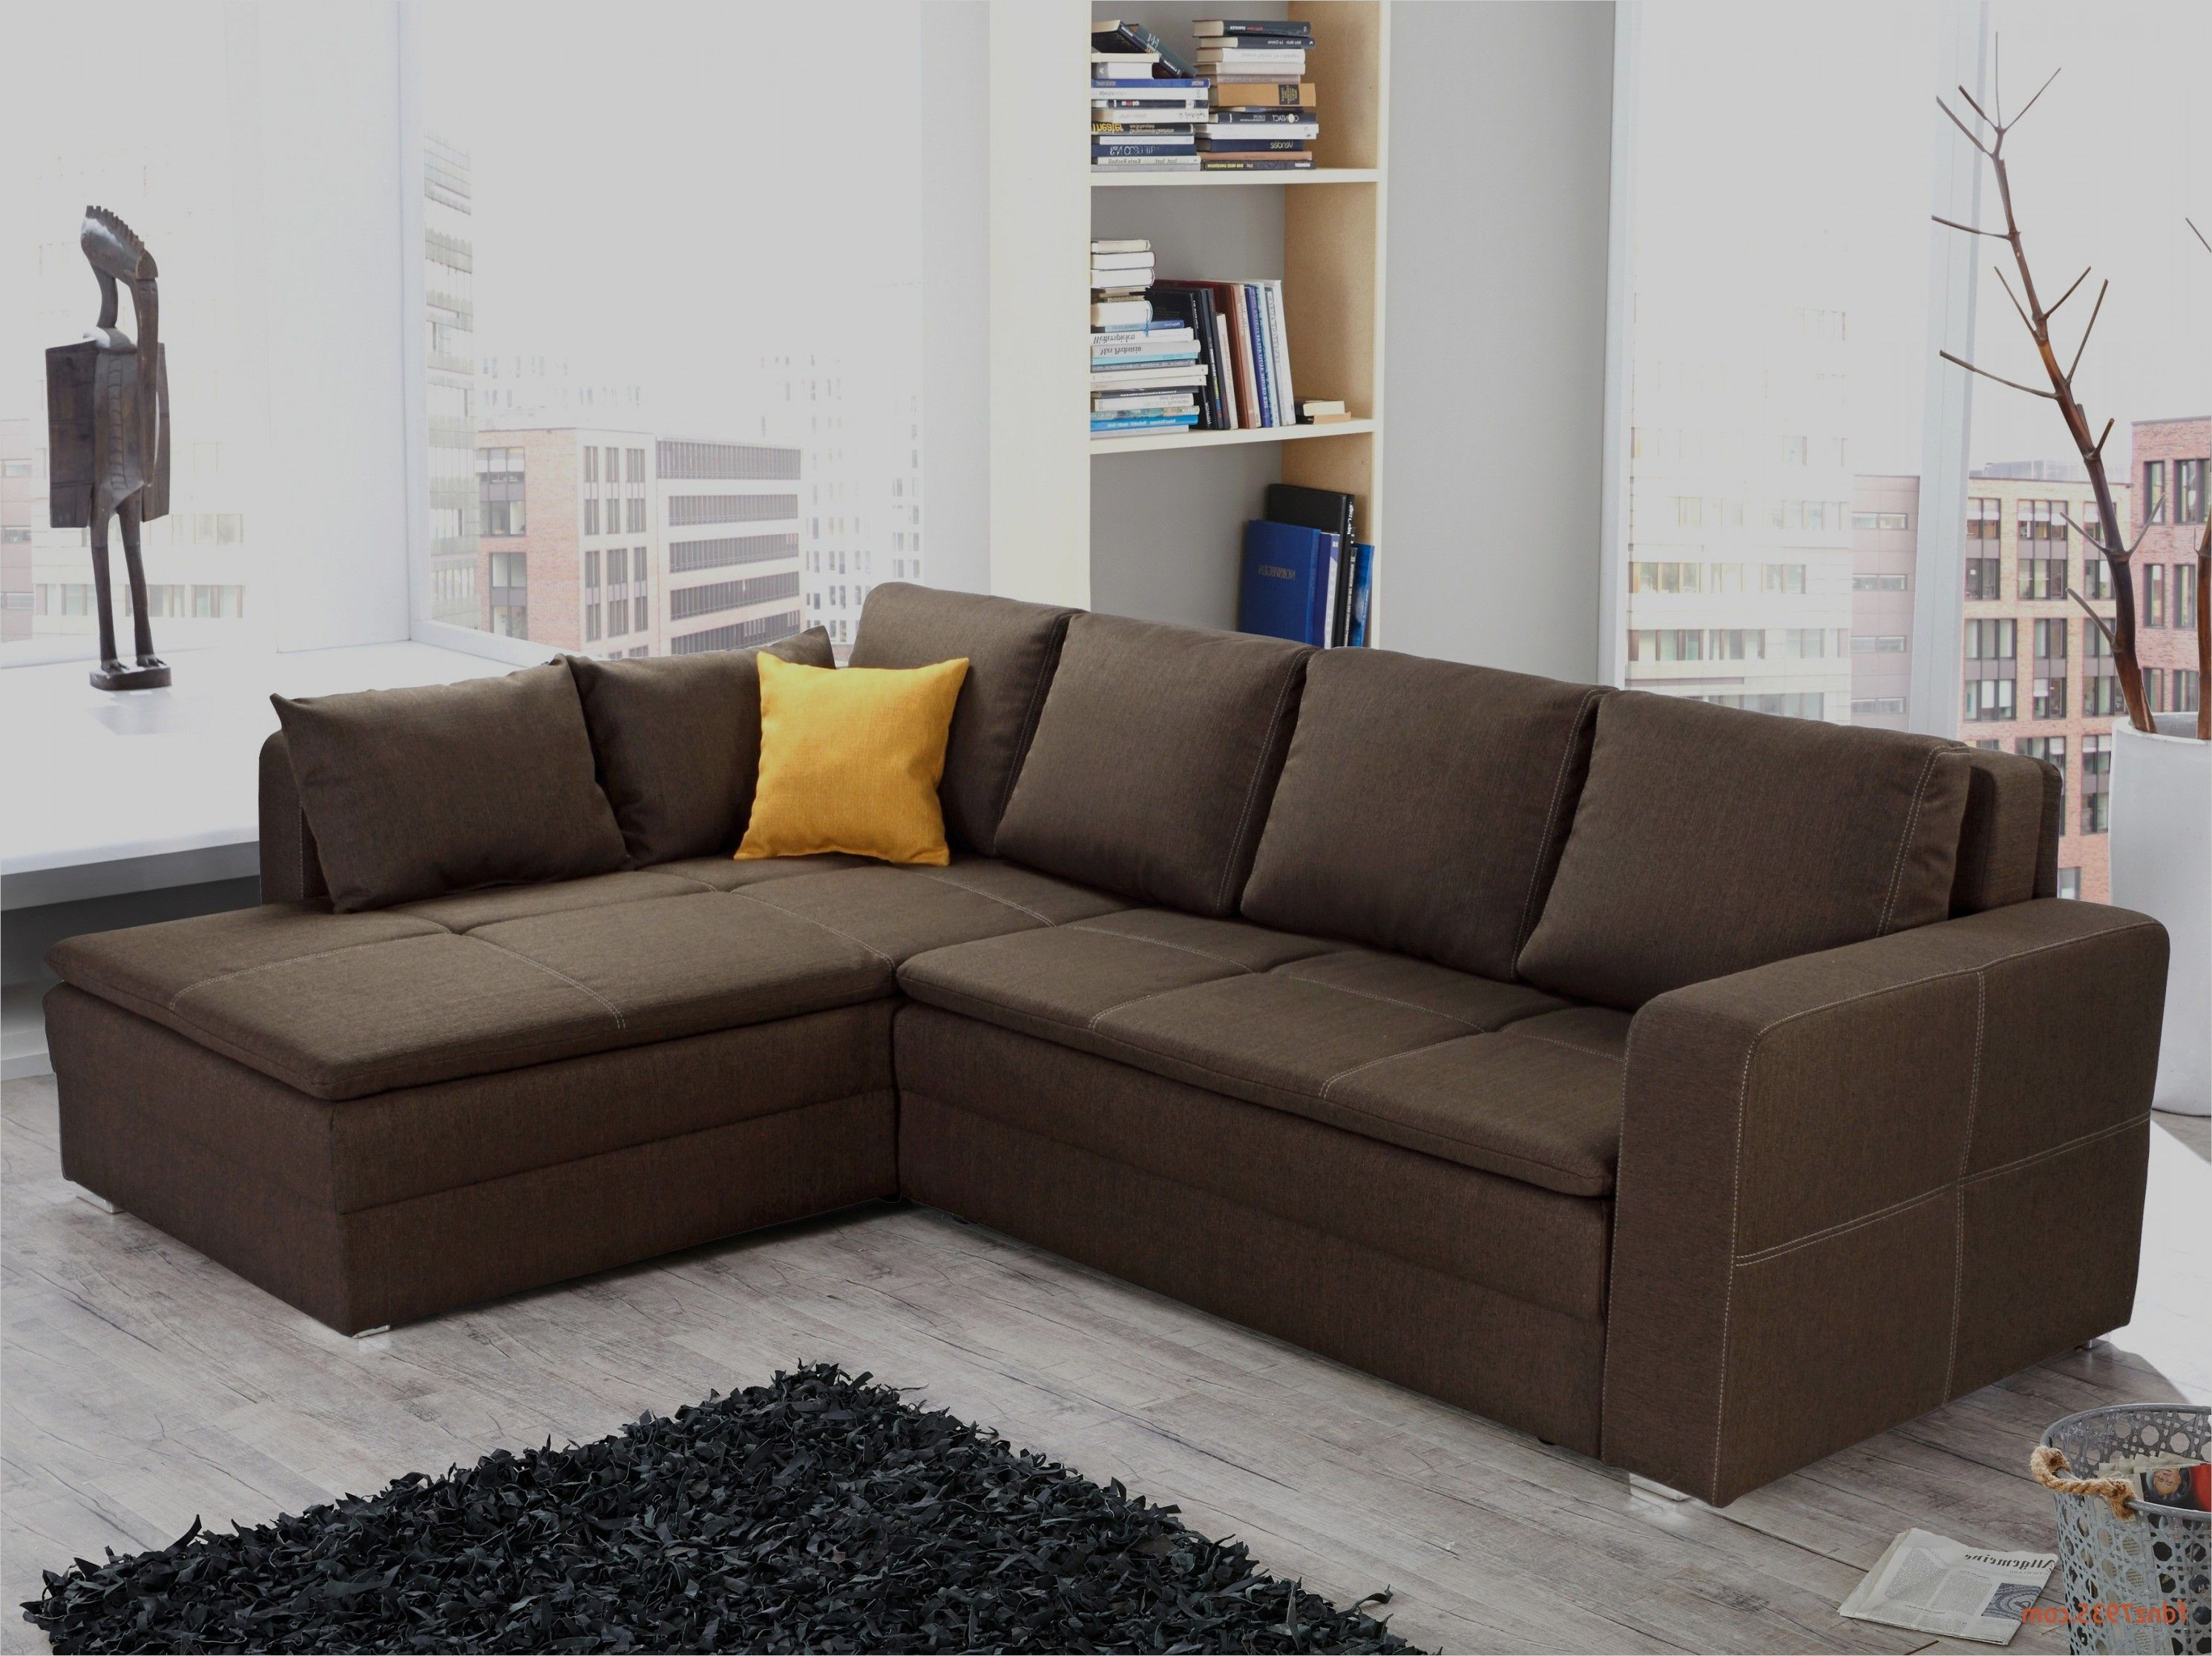 Living Room Decorating Ideas With Sectional Luxury Attractive Small Living Room Decor Ideas With Sectional Sofa Ide Dekorasi Rumah Ruang Keluarga Set Sofa #sectional #sofas #living #room #ideas